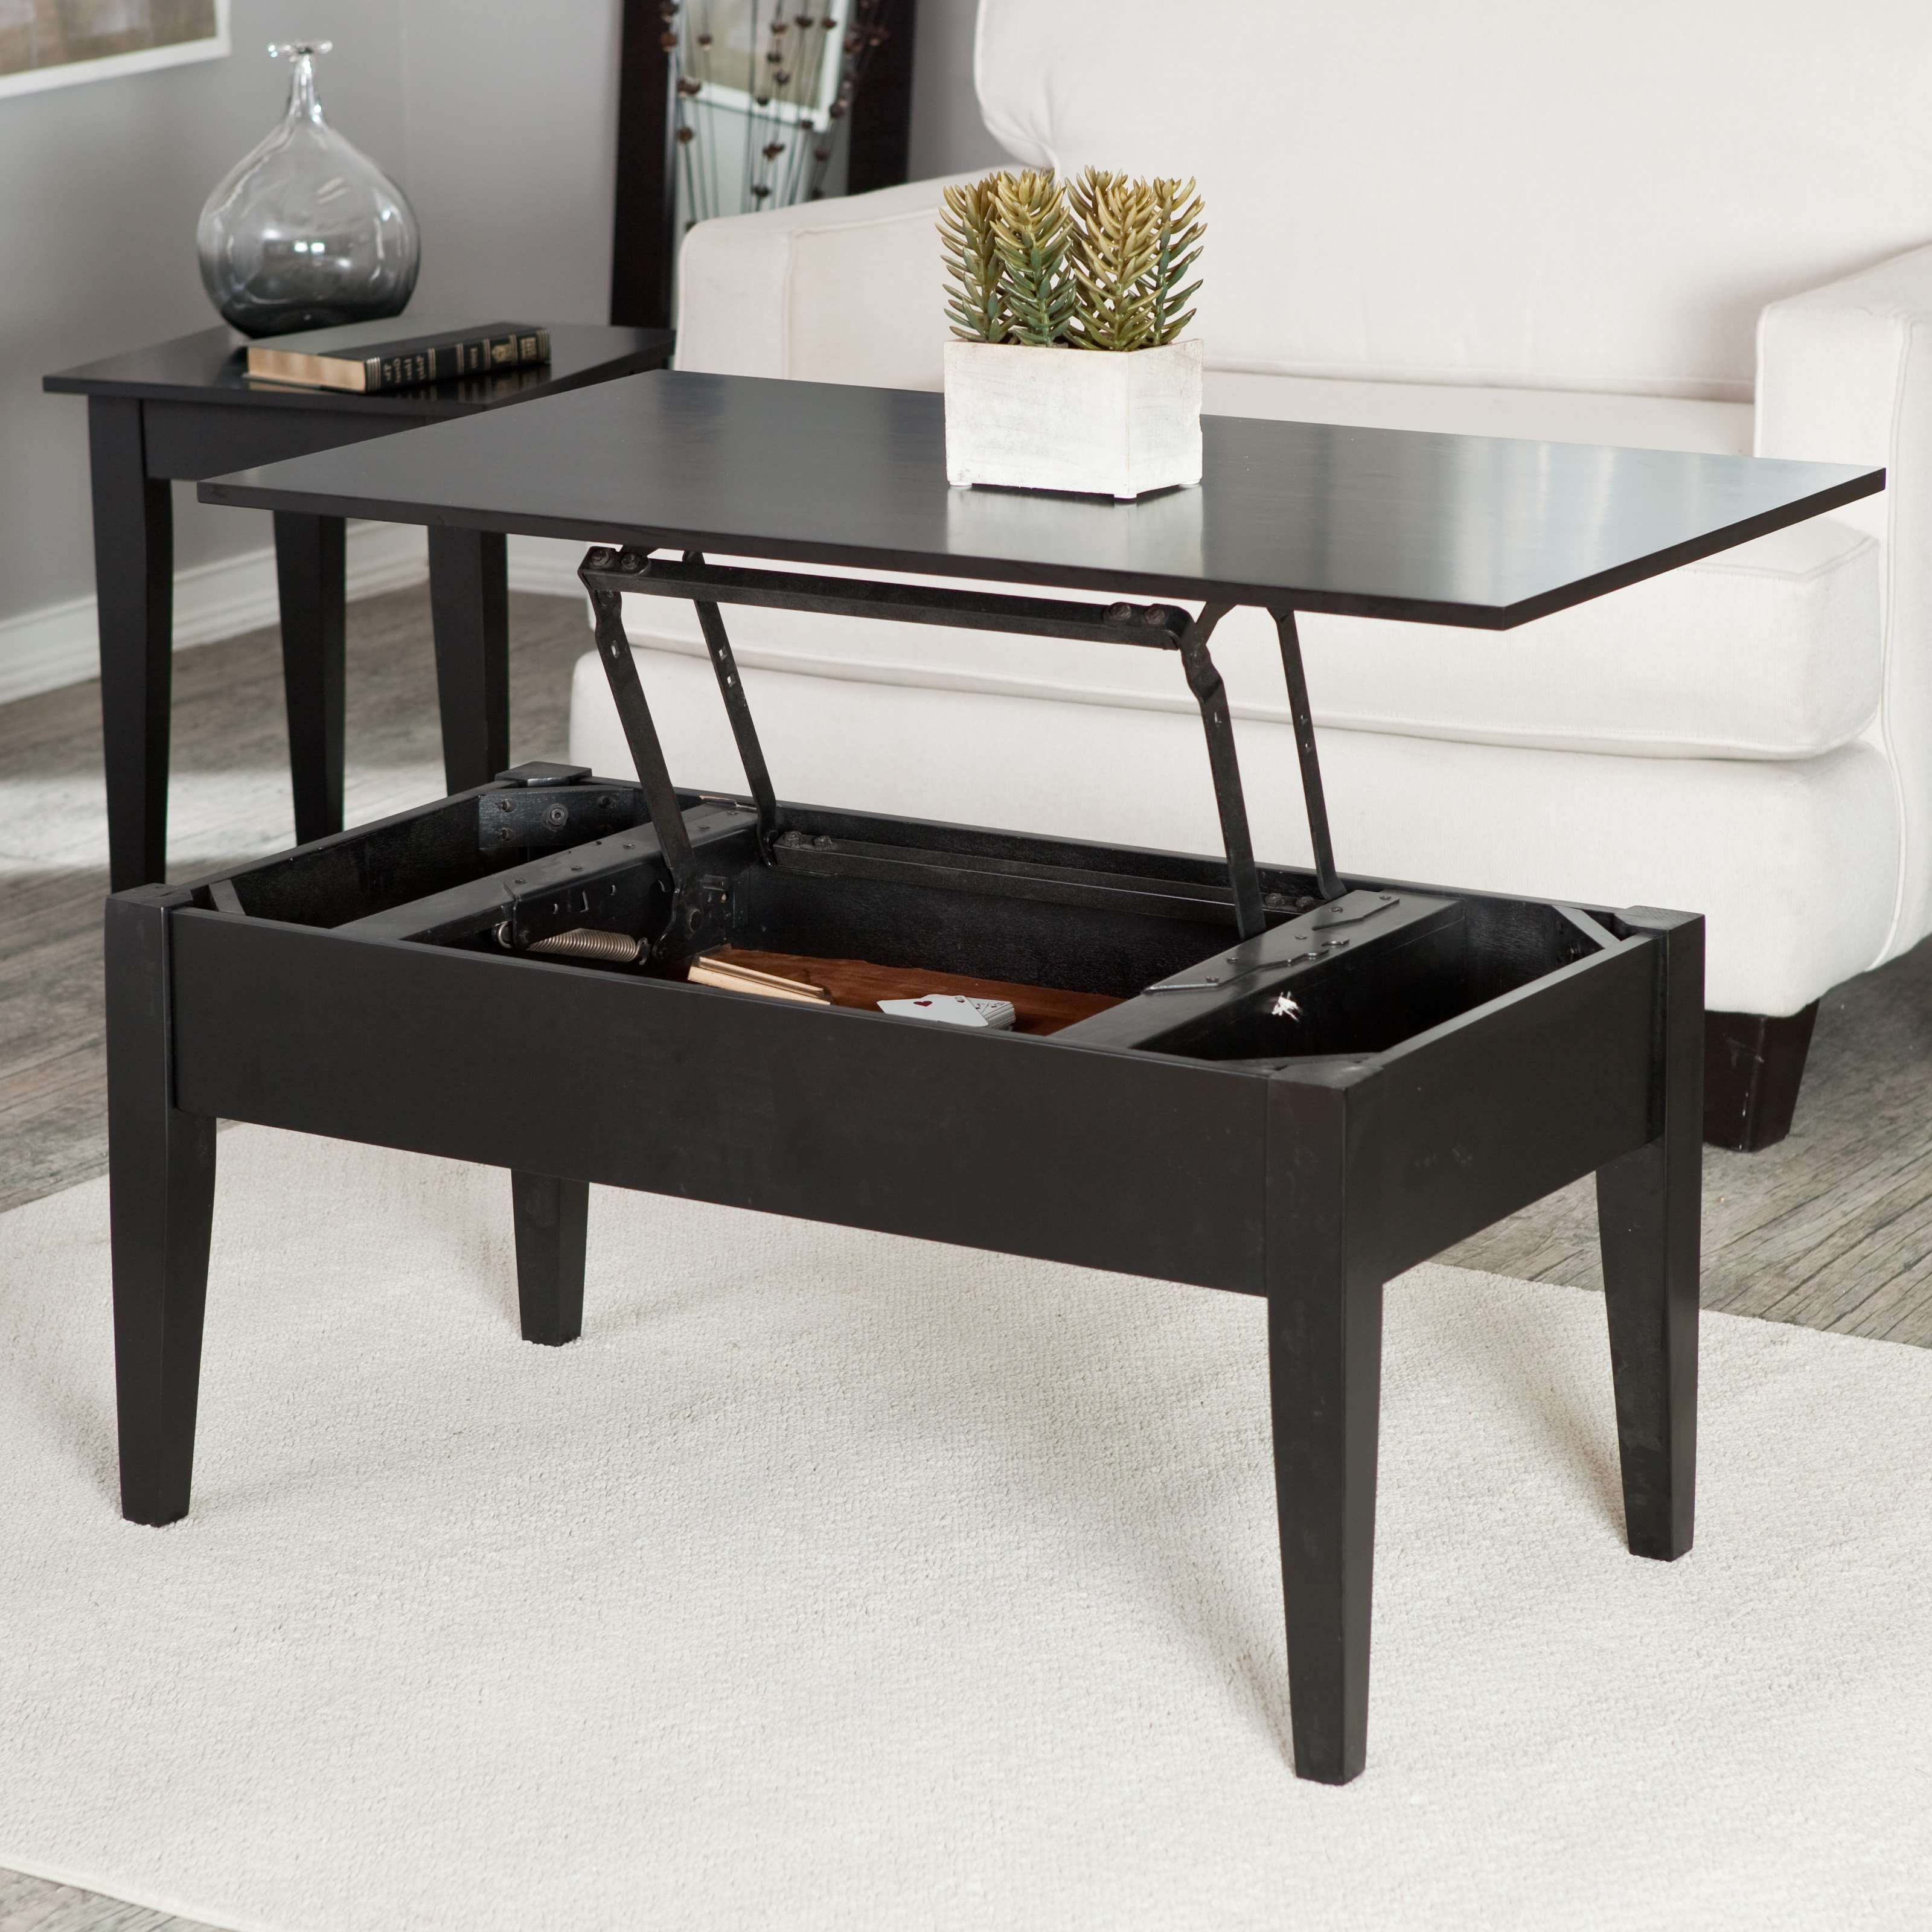 Lift Top Coffee Table With Unique Design (View 15 of 20)